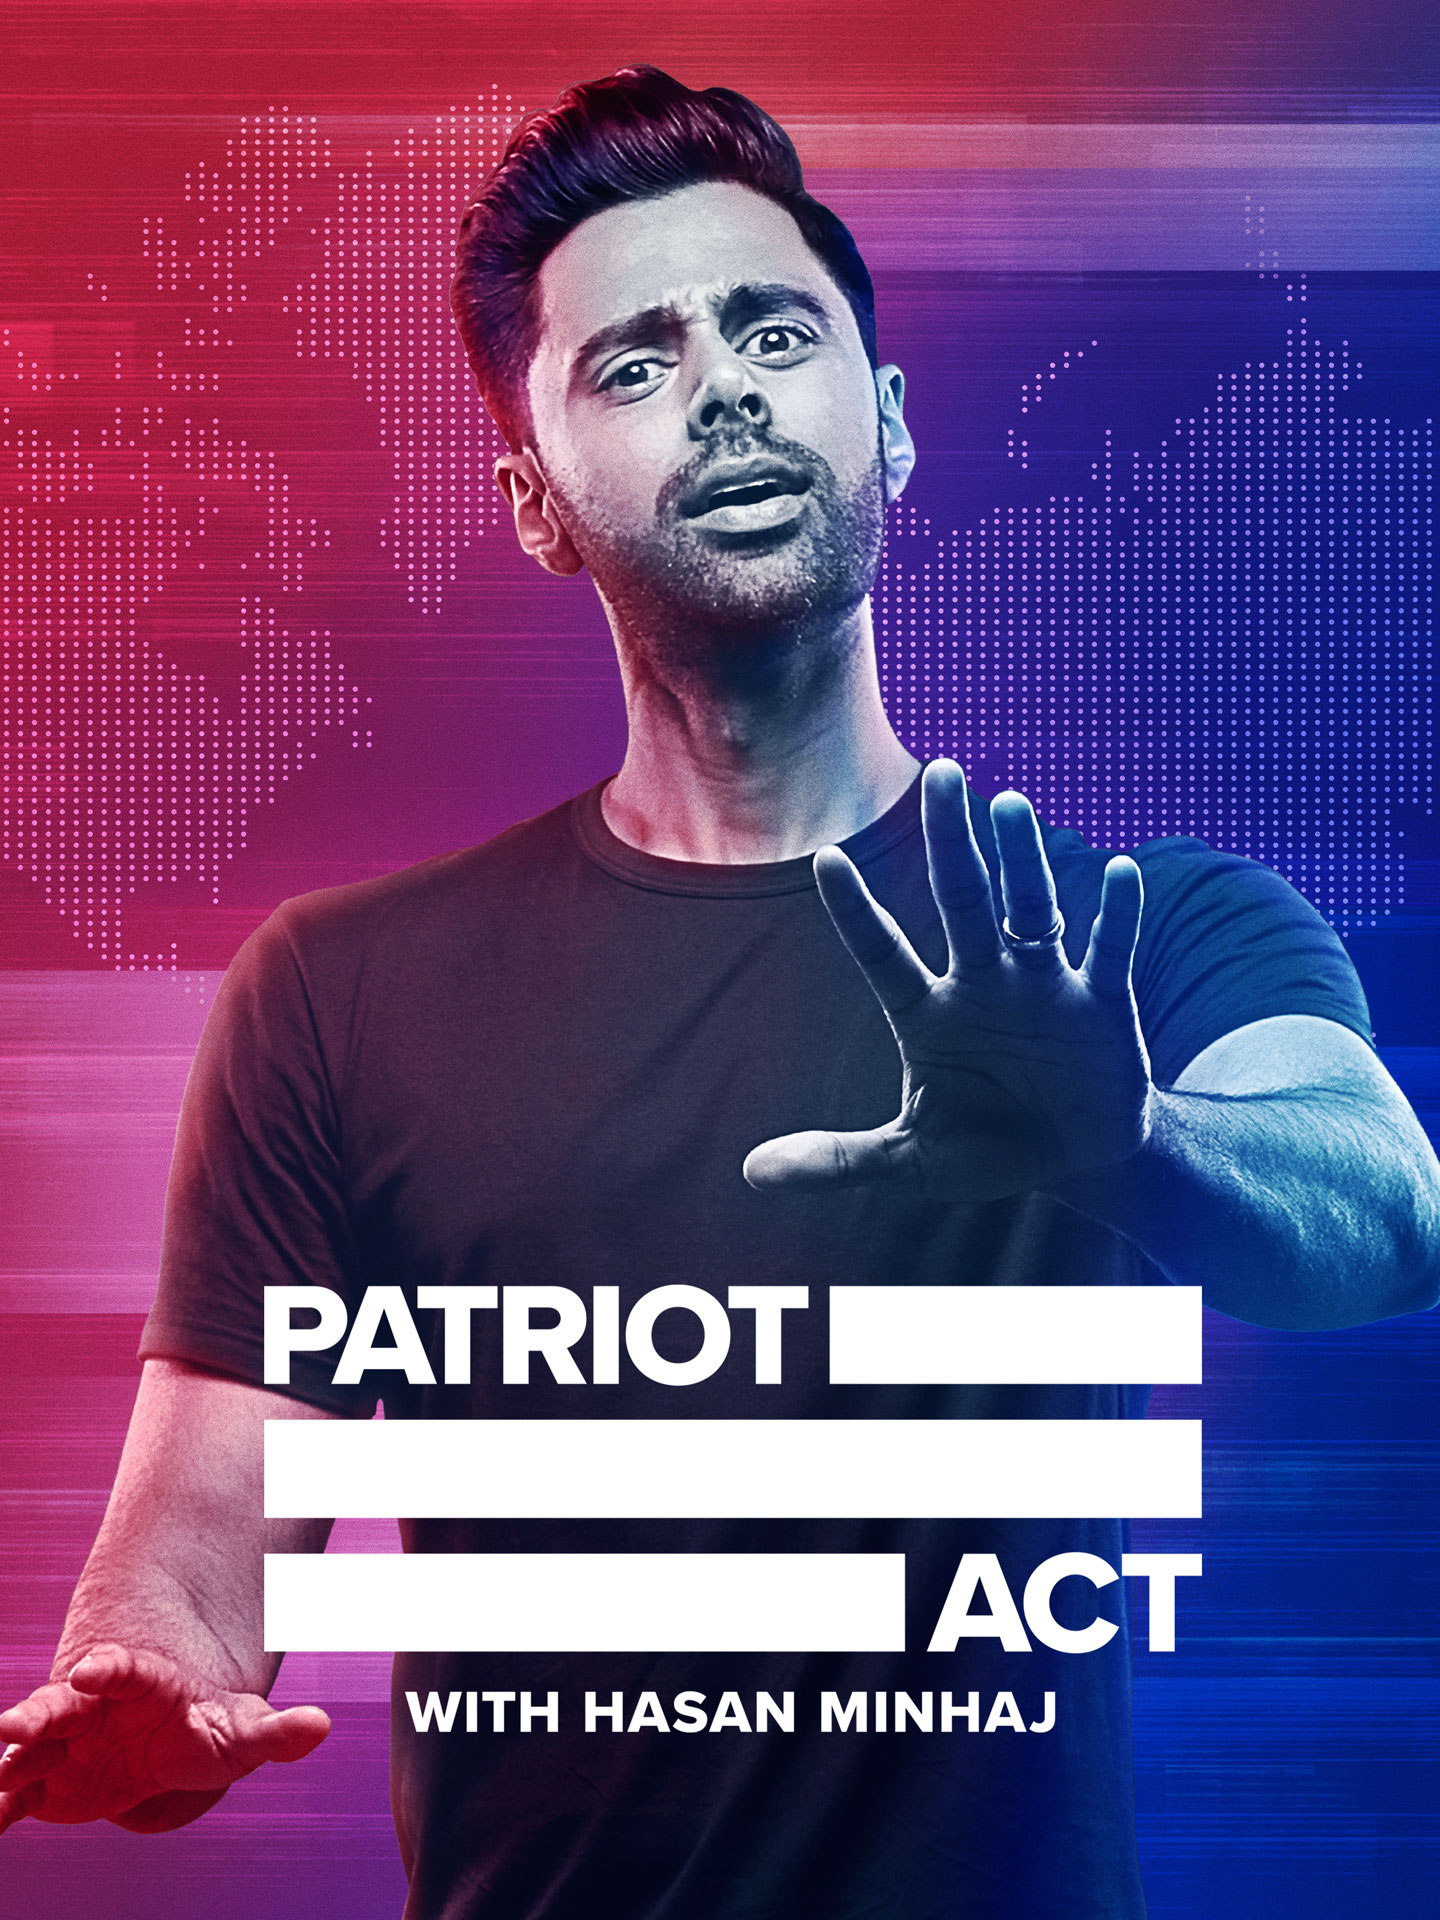 Promotional poster for PATRIOT ACT WITH HASAN MINHAJ.